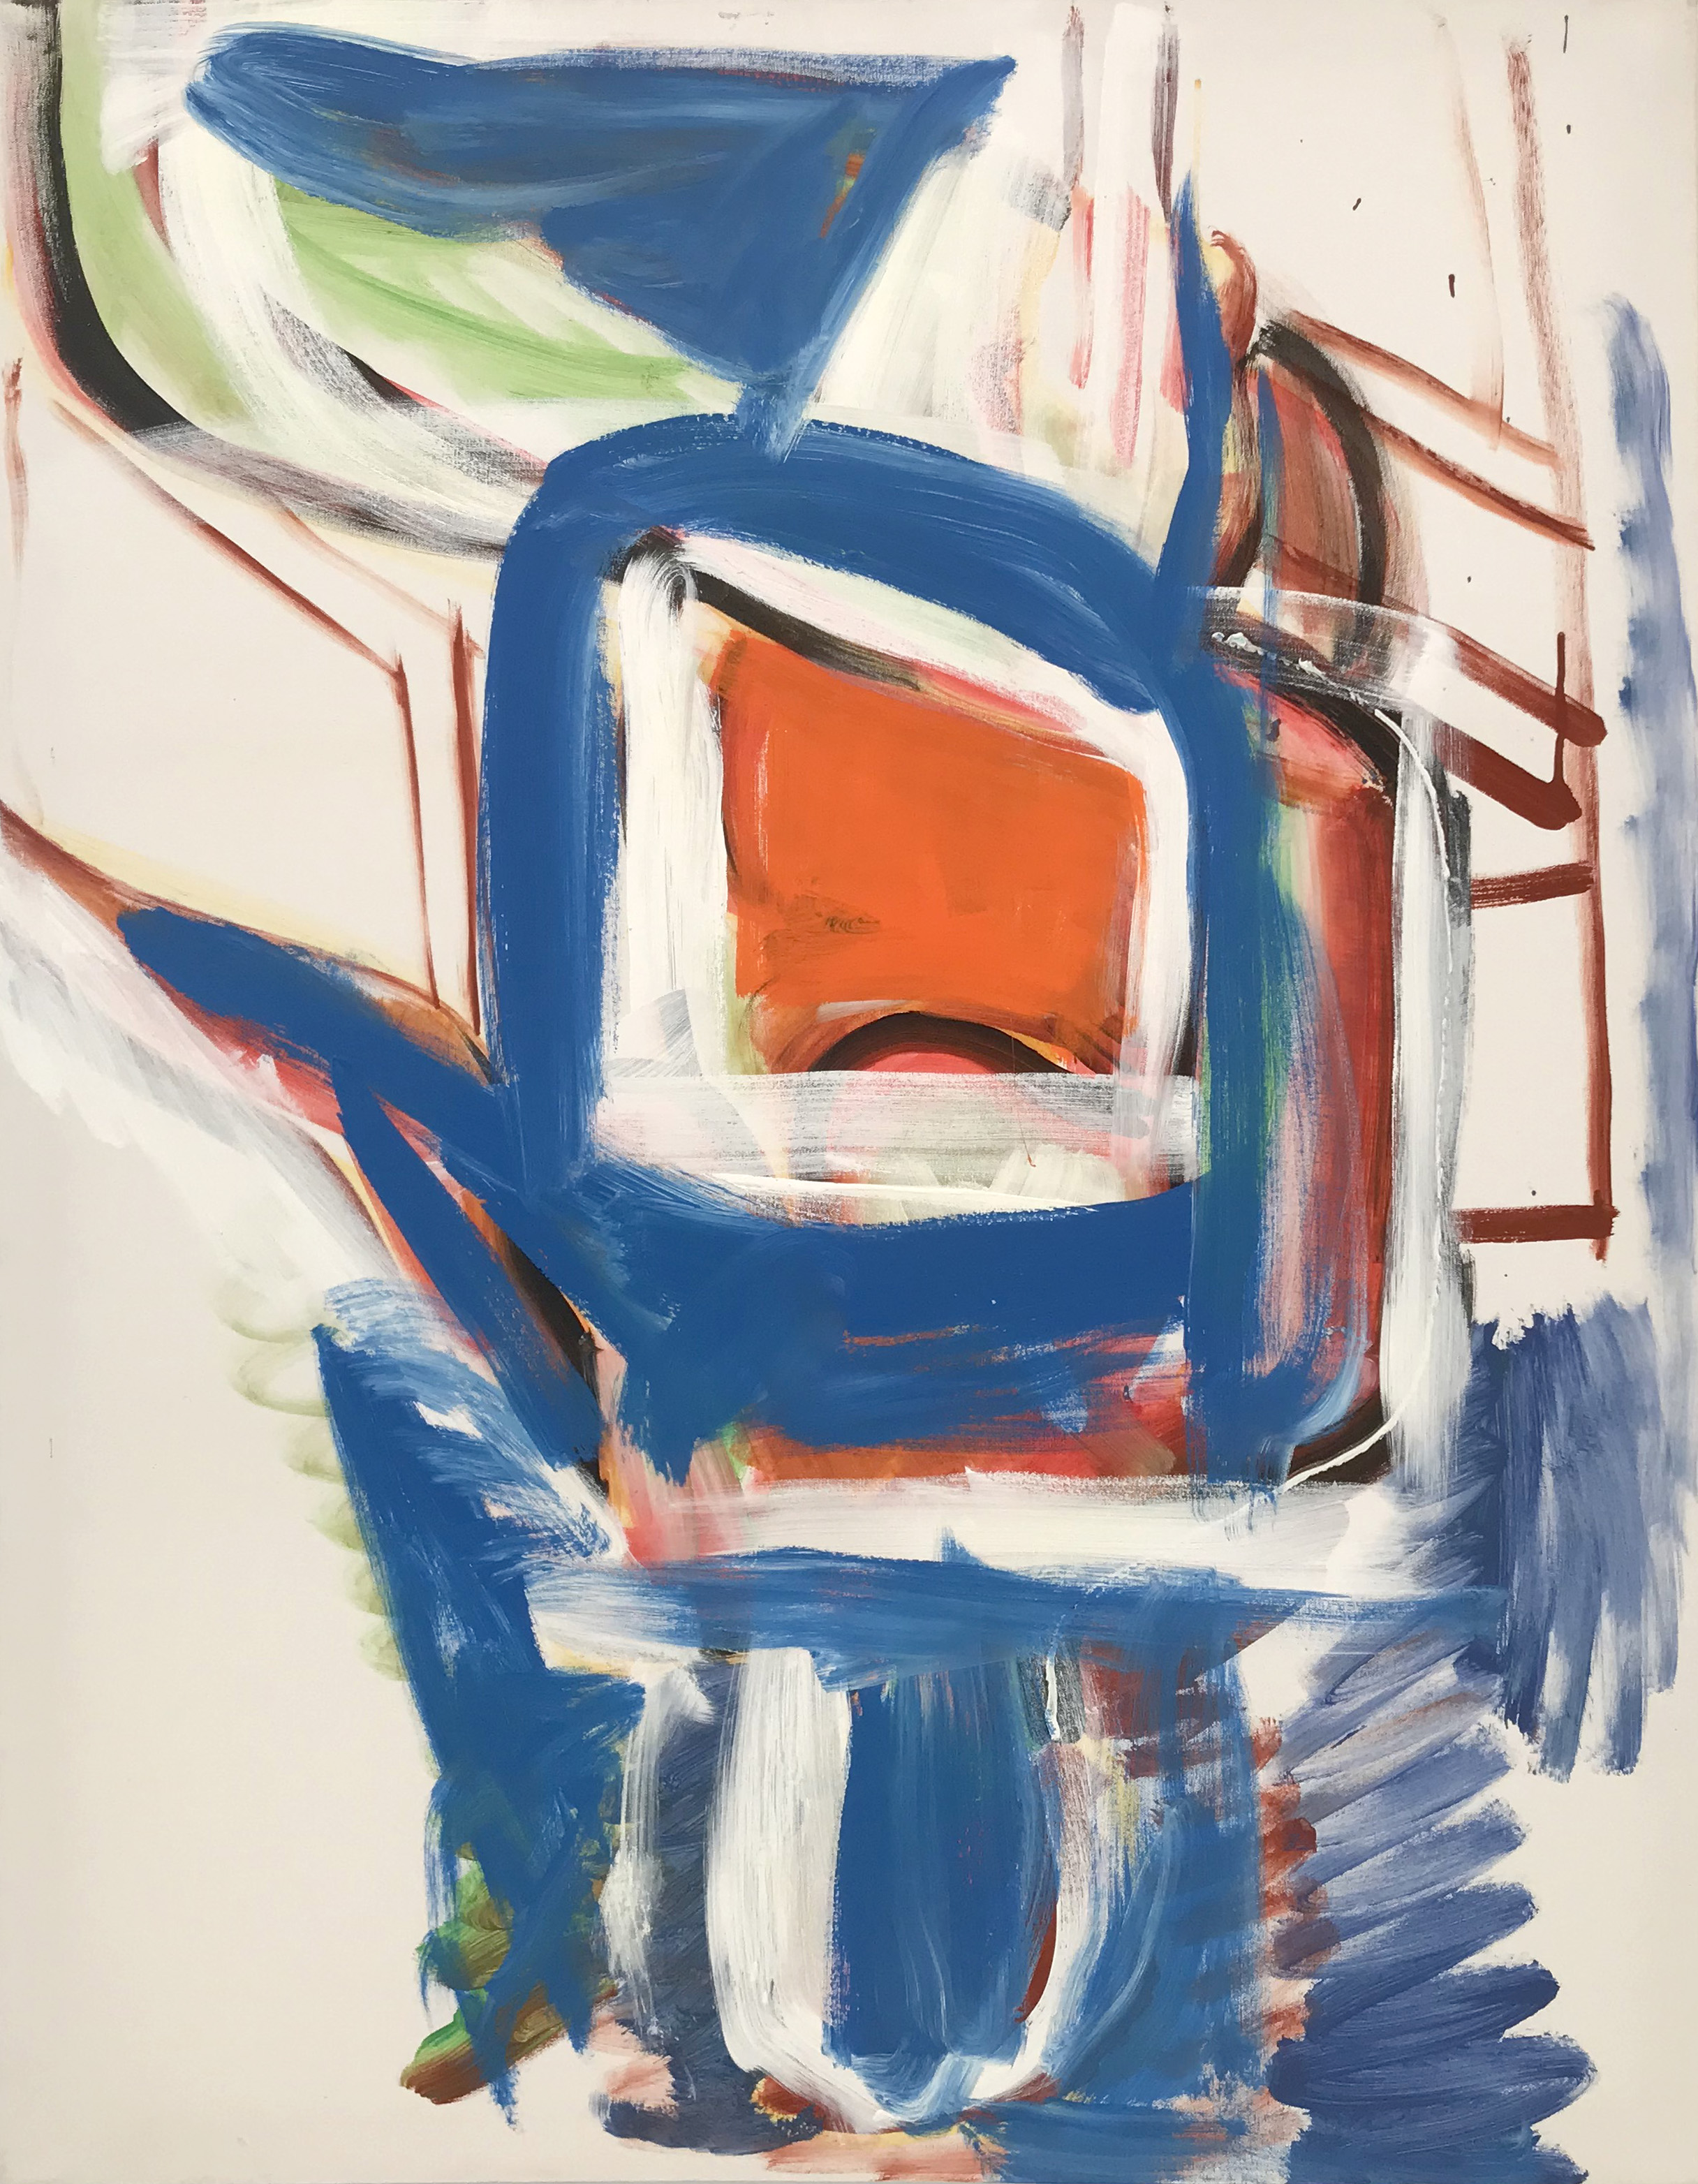 DICK WATKINS  Stravinsky,  2018 acrylic on canvas 121 x 91 cm